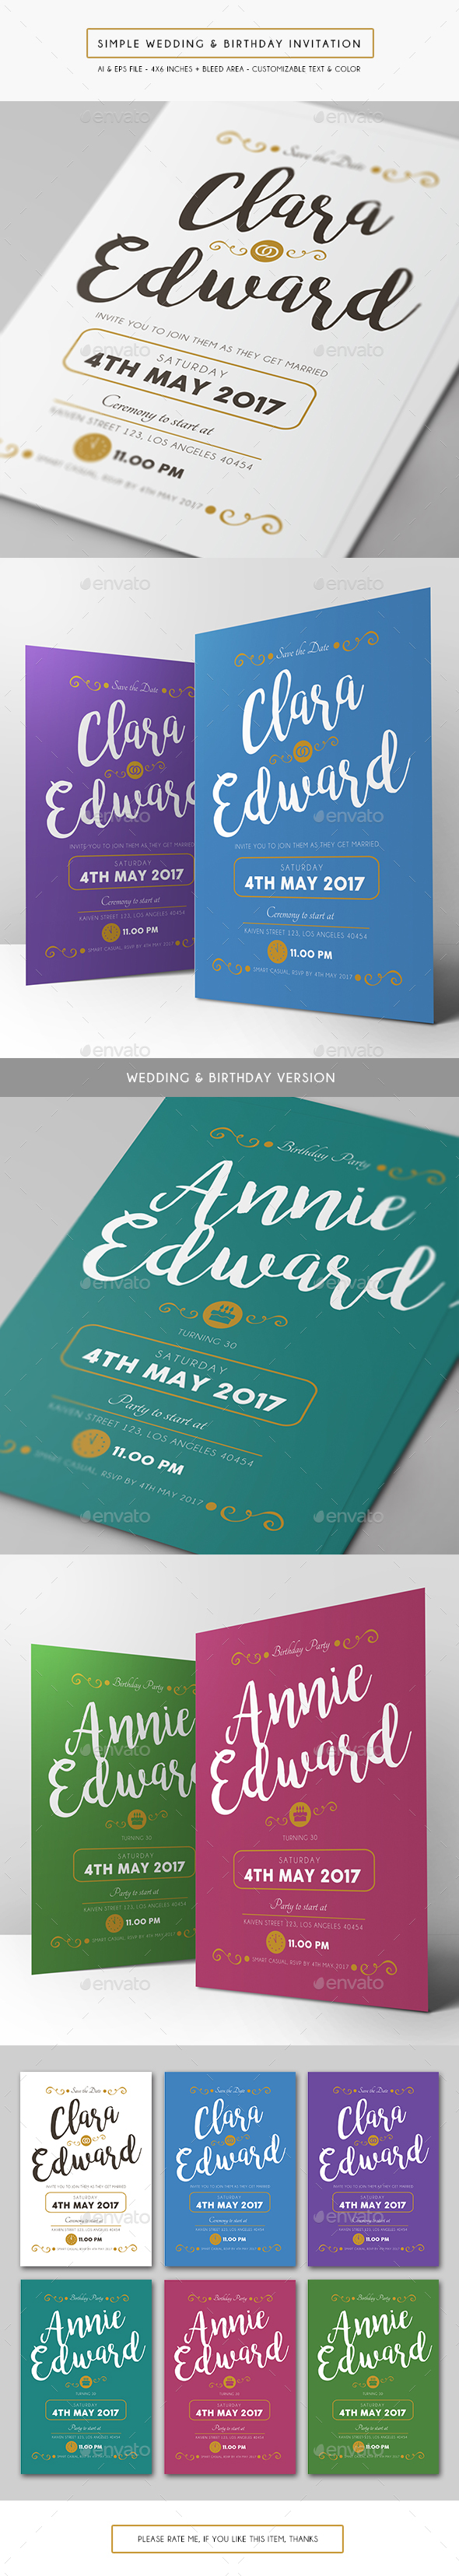 Simple Wedding & Birthday Invitation - Weddings Cards & Invites